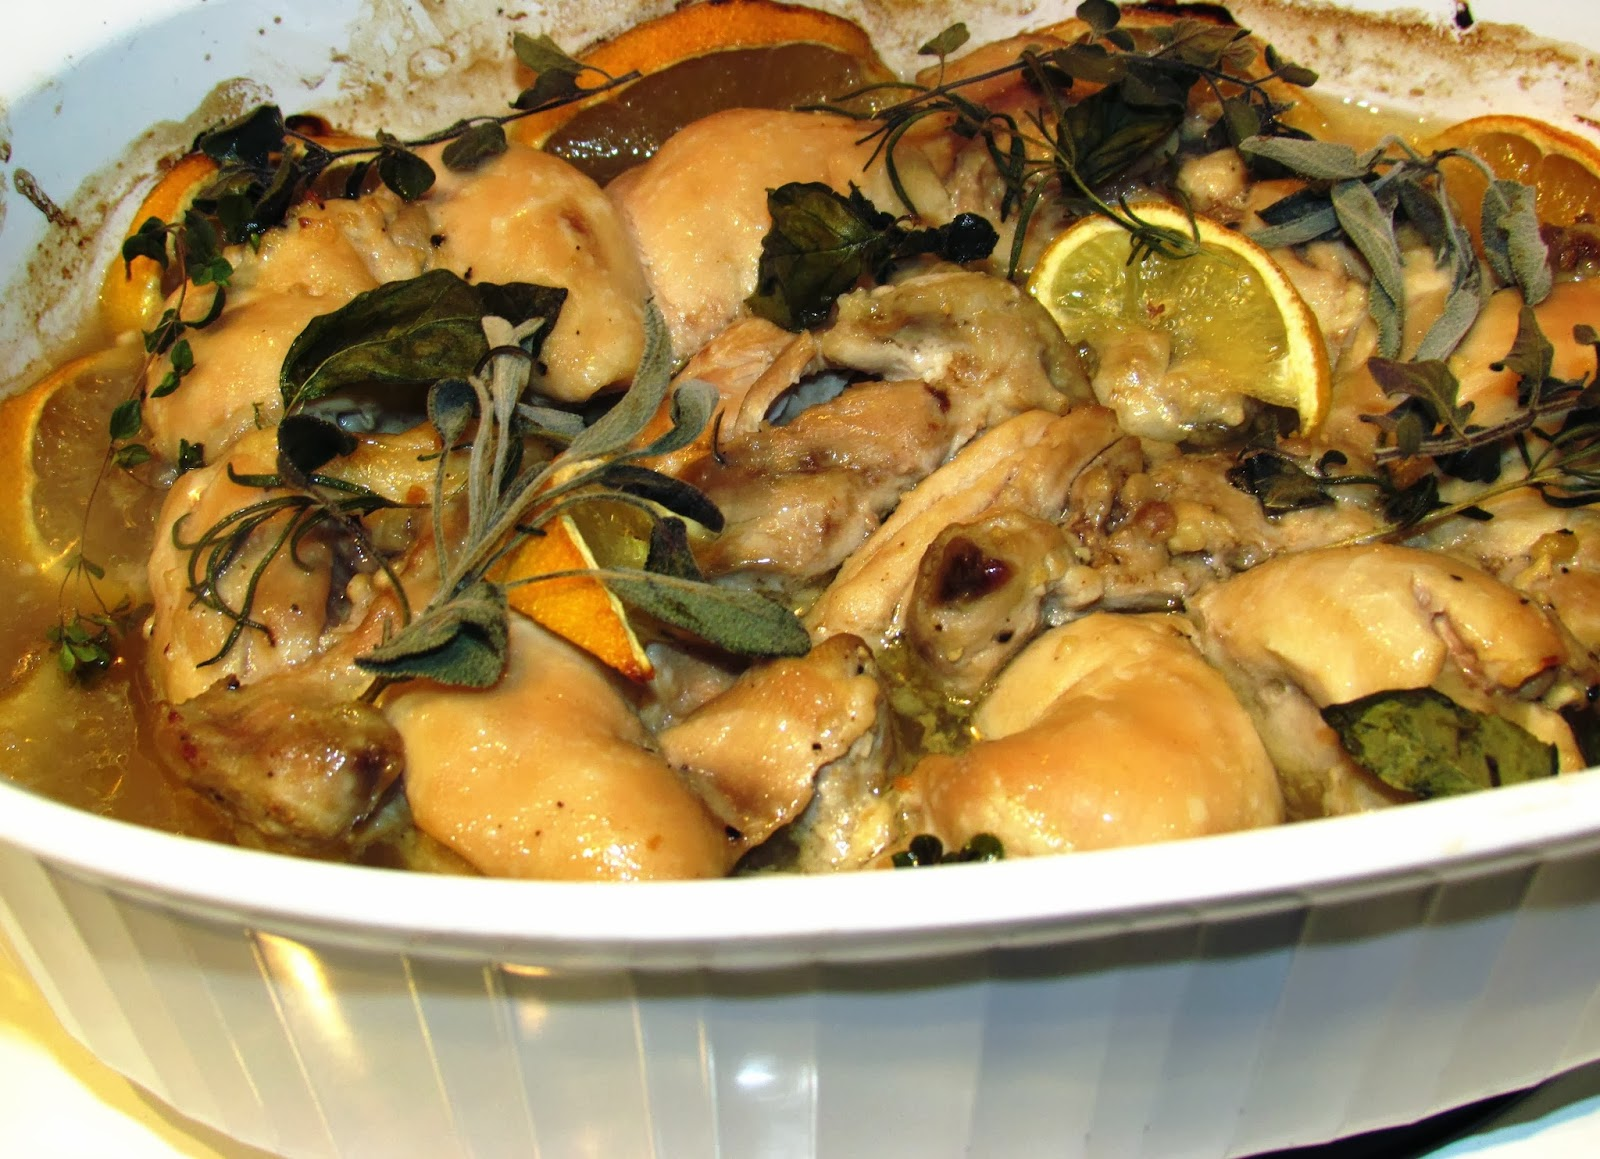 a second glance.: Garlic-marinated roasted chicken thighs ...